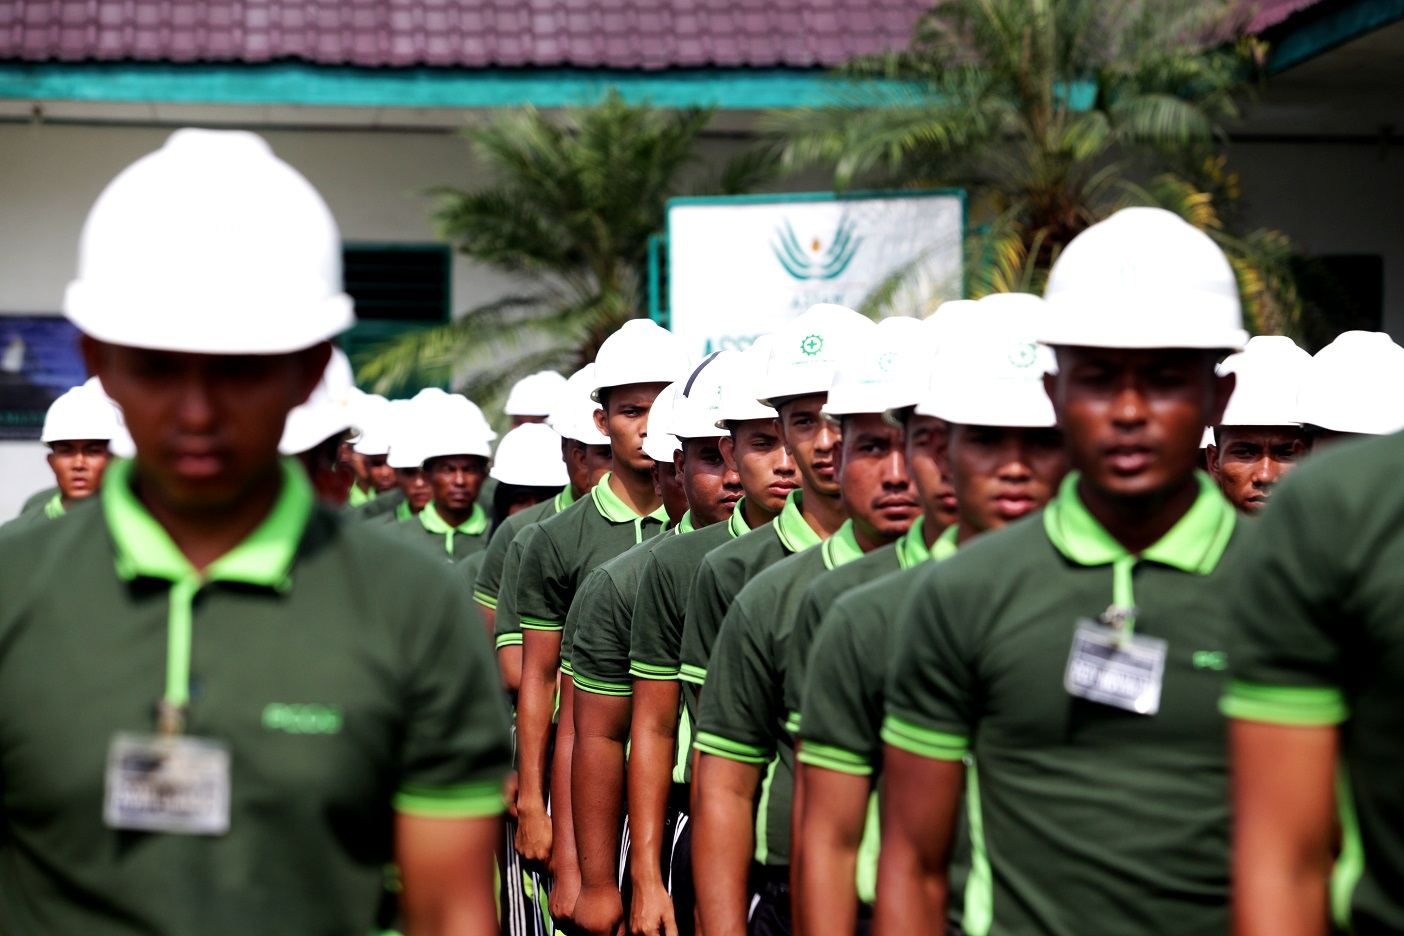 Each year, the Asian Agri Learning Institute takes in some 100 trainees